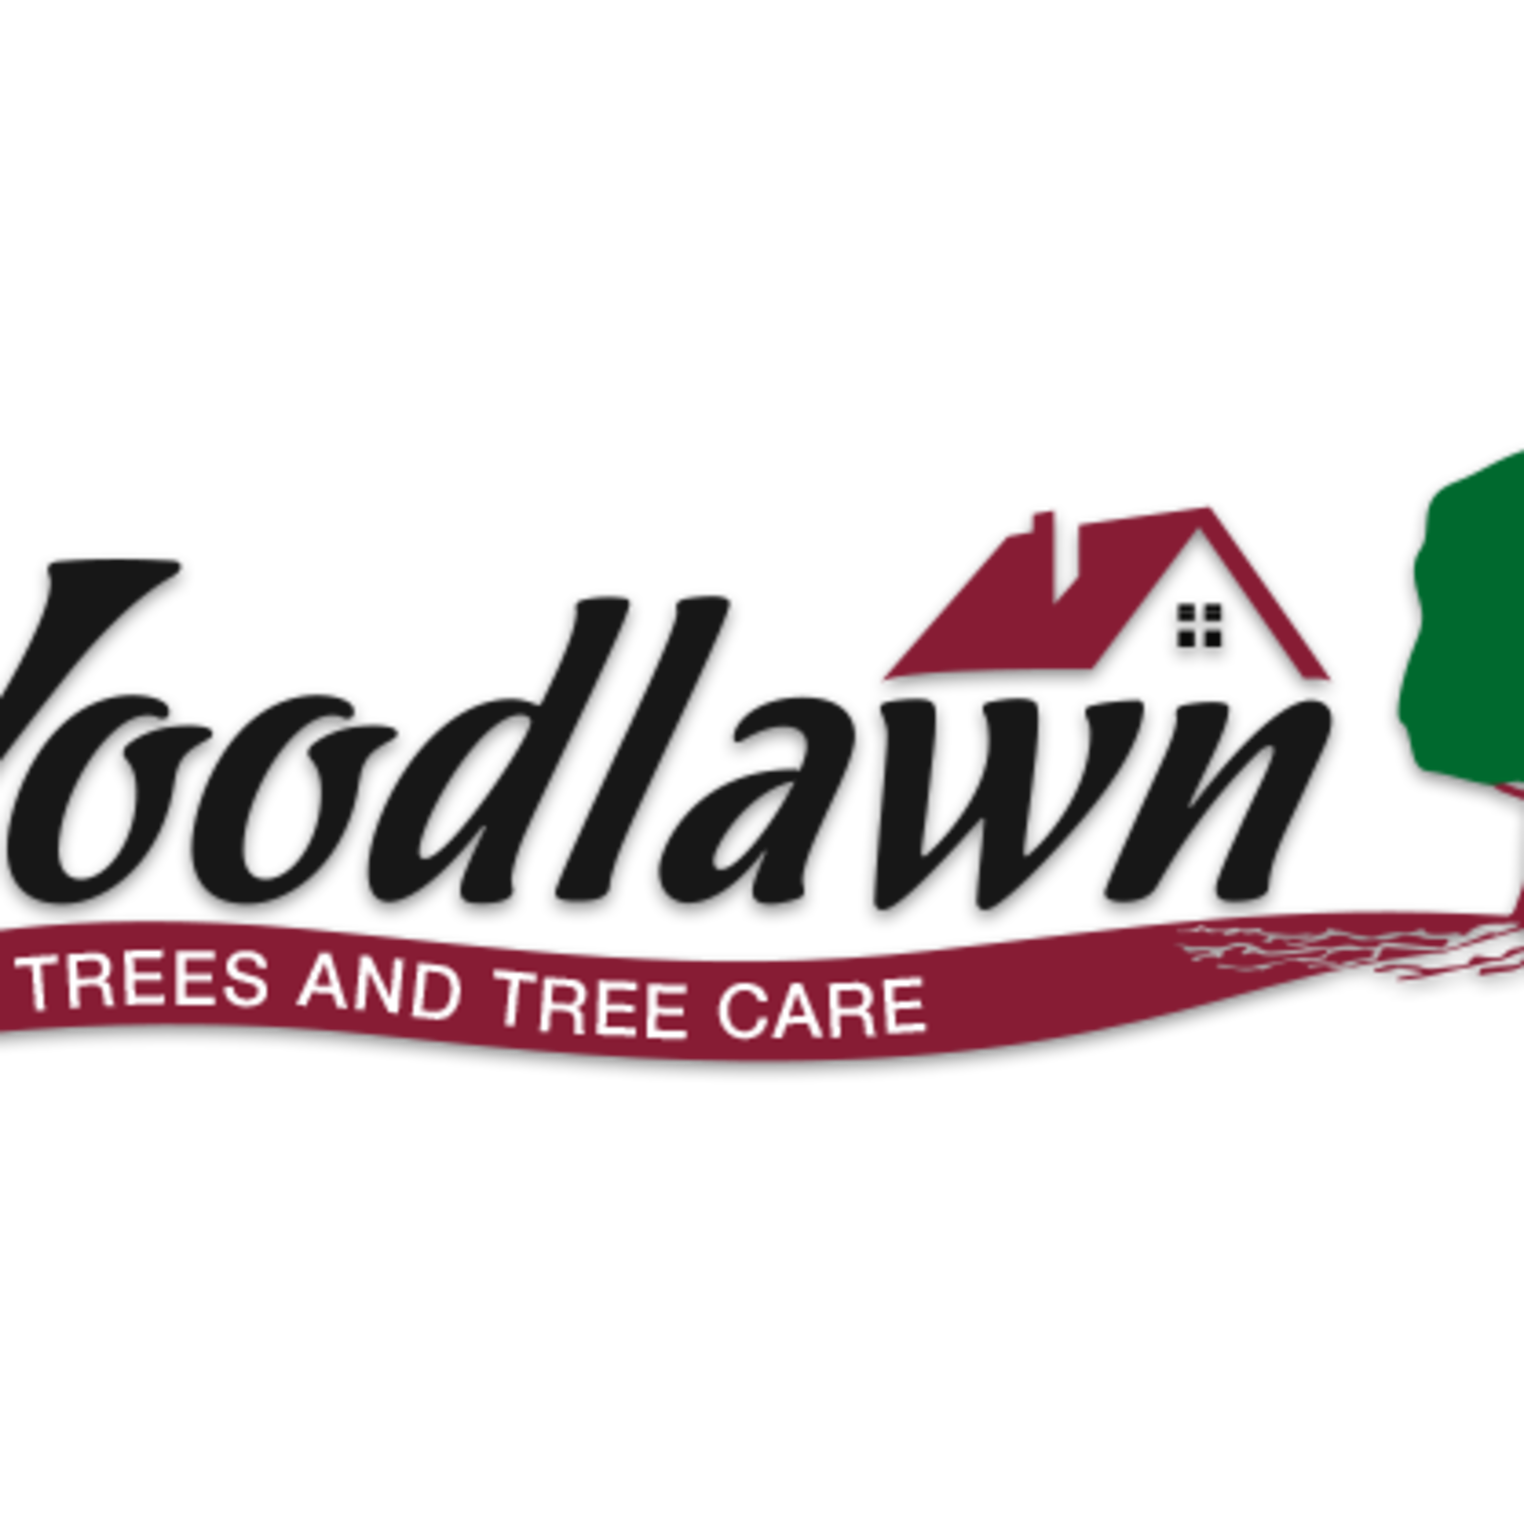 Woodlawn Trees and Tree Care